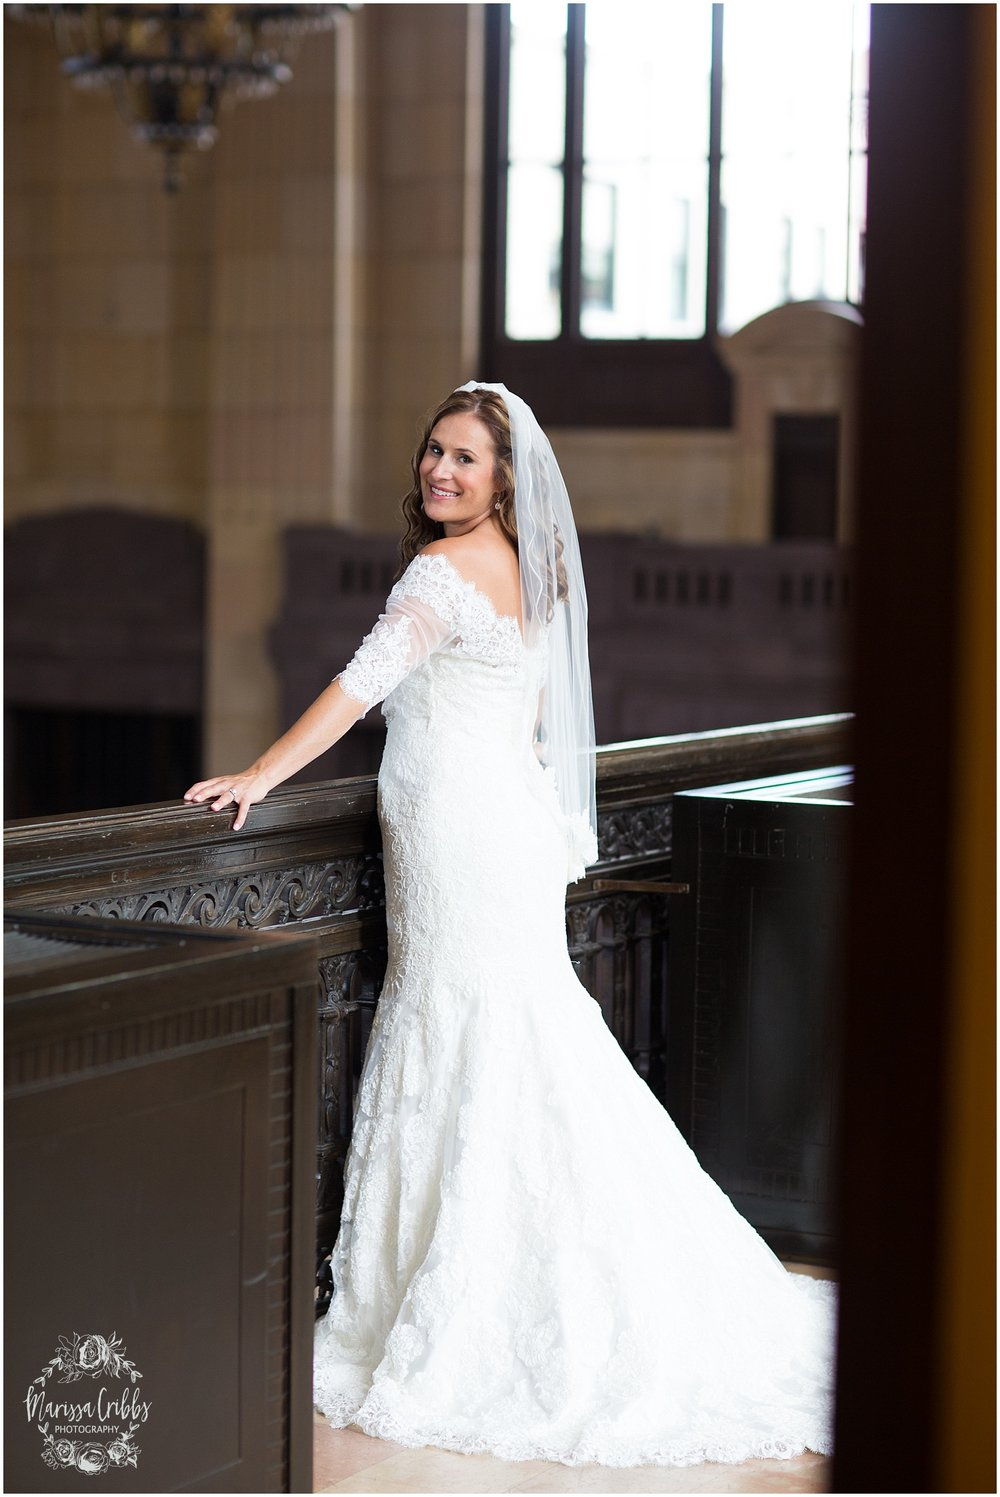 Madrid Theatre Wedding | Union Station | Liberty Memorial | KC Wedding Photographer | Marissa Cribbs Photography_0523.jpg